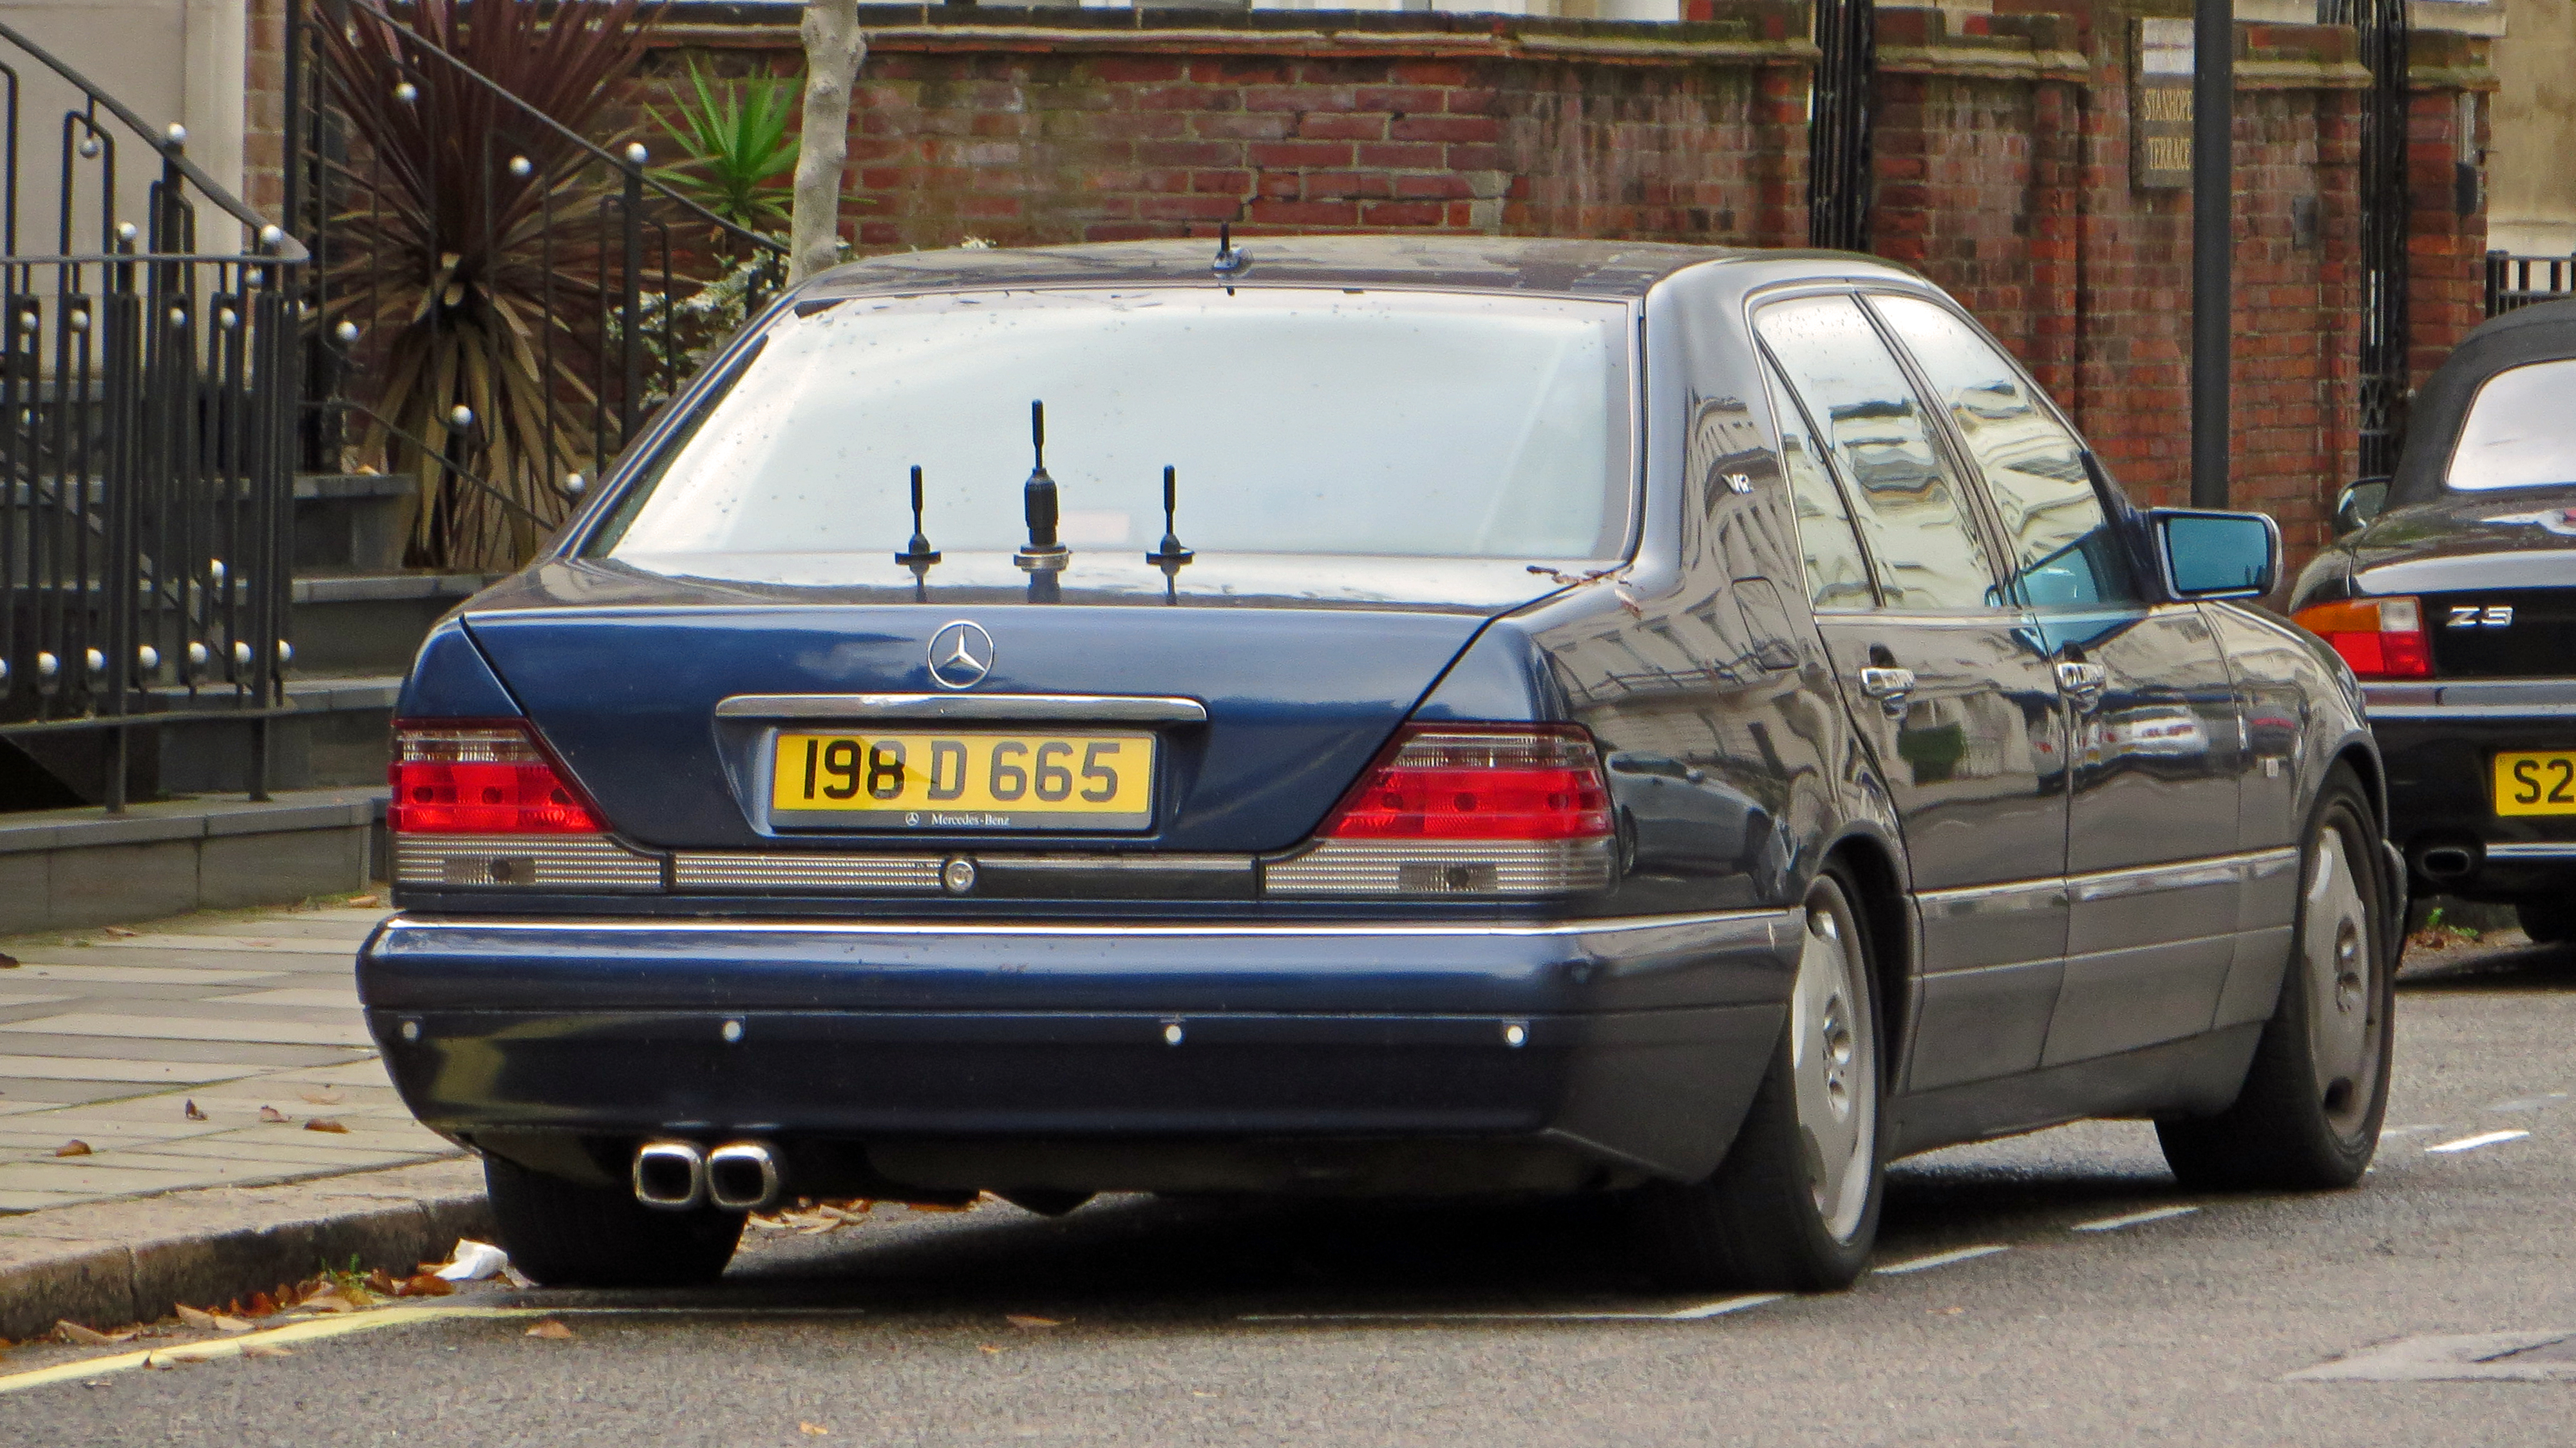 city of westminster london uk 1996 1998 mercedes benz s. Cars Review. Best American Auto & Cars Review